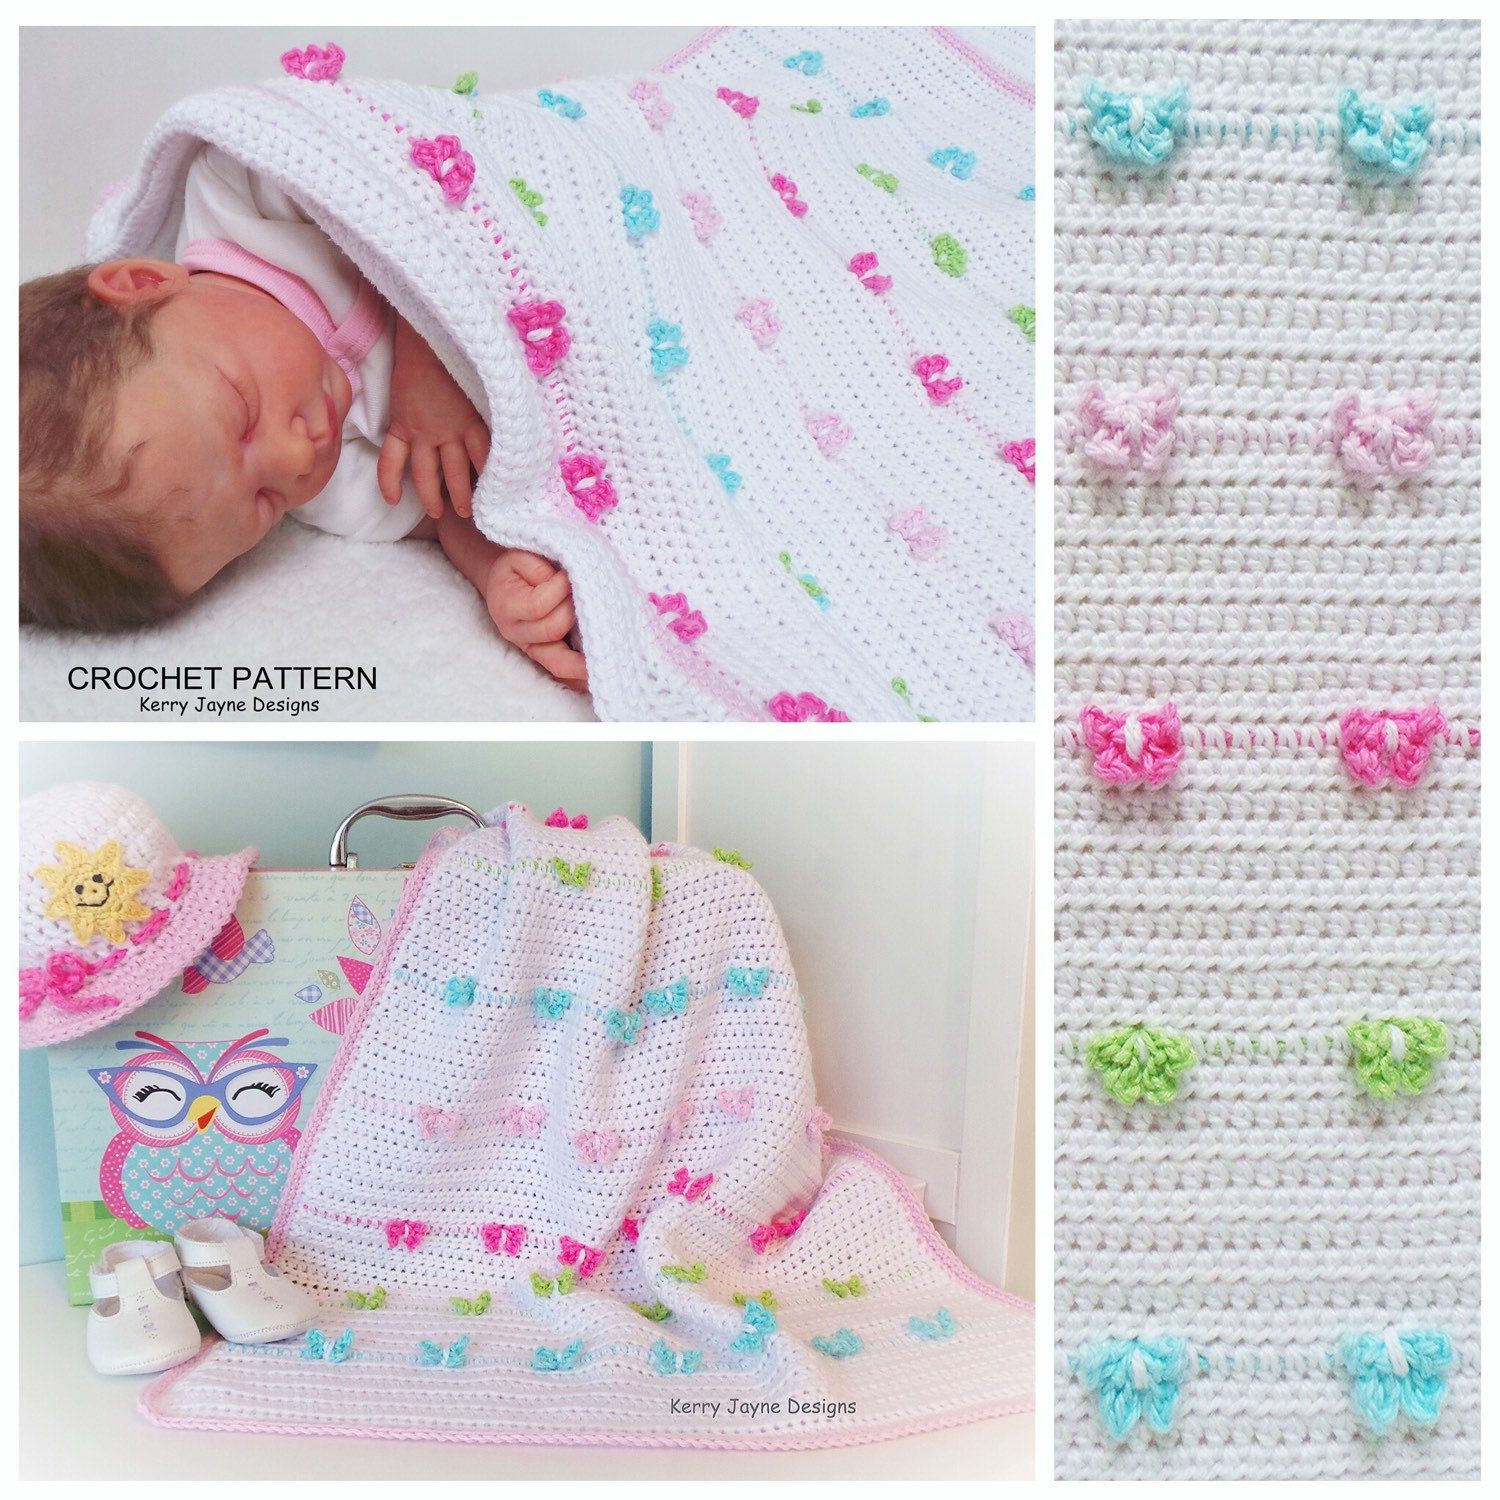 The Butterfly Parade Baby Blanket Pattern modelled by Baby Rosie 💕 Designed By Kerry Jayne Designs